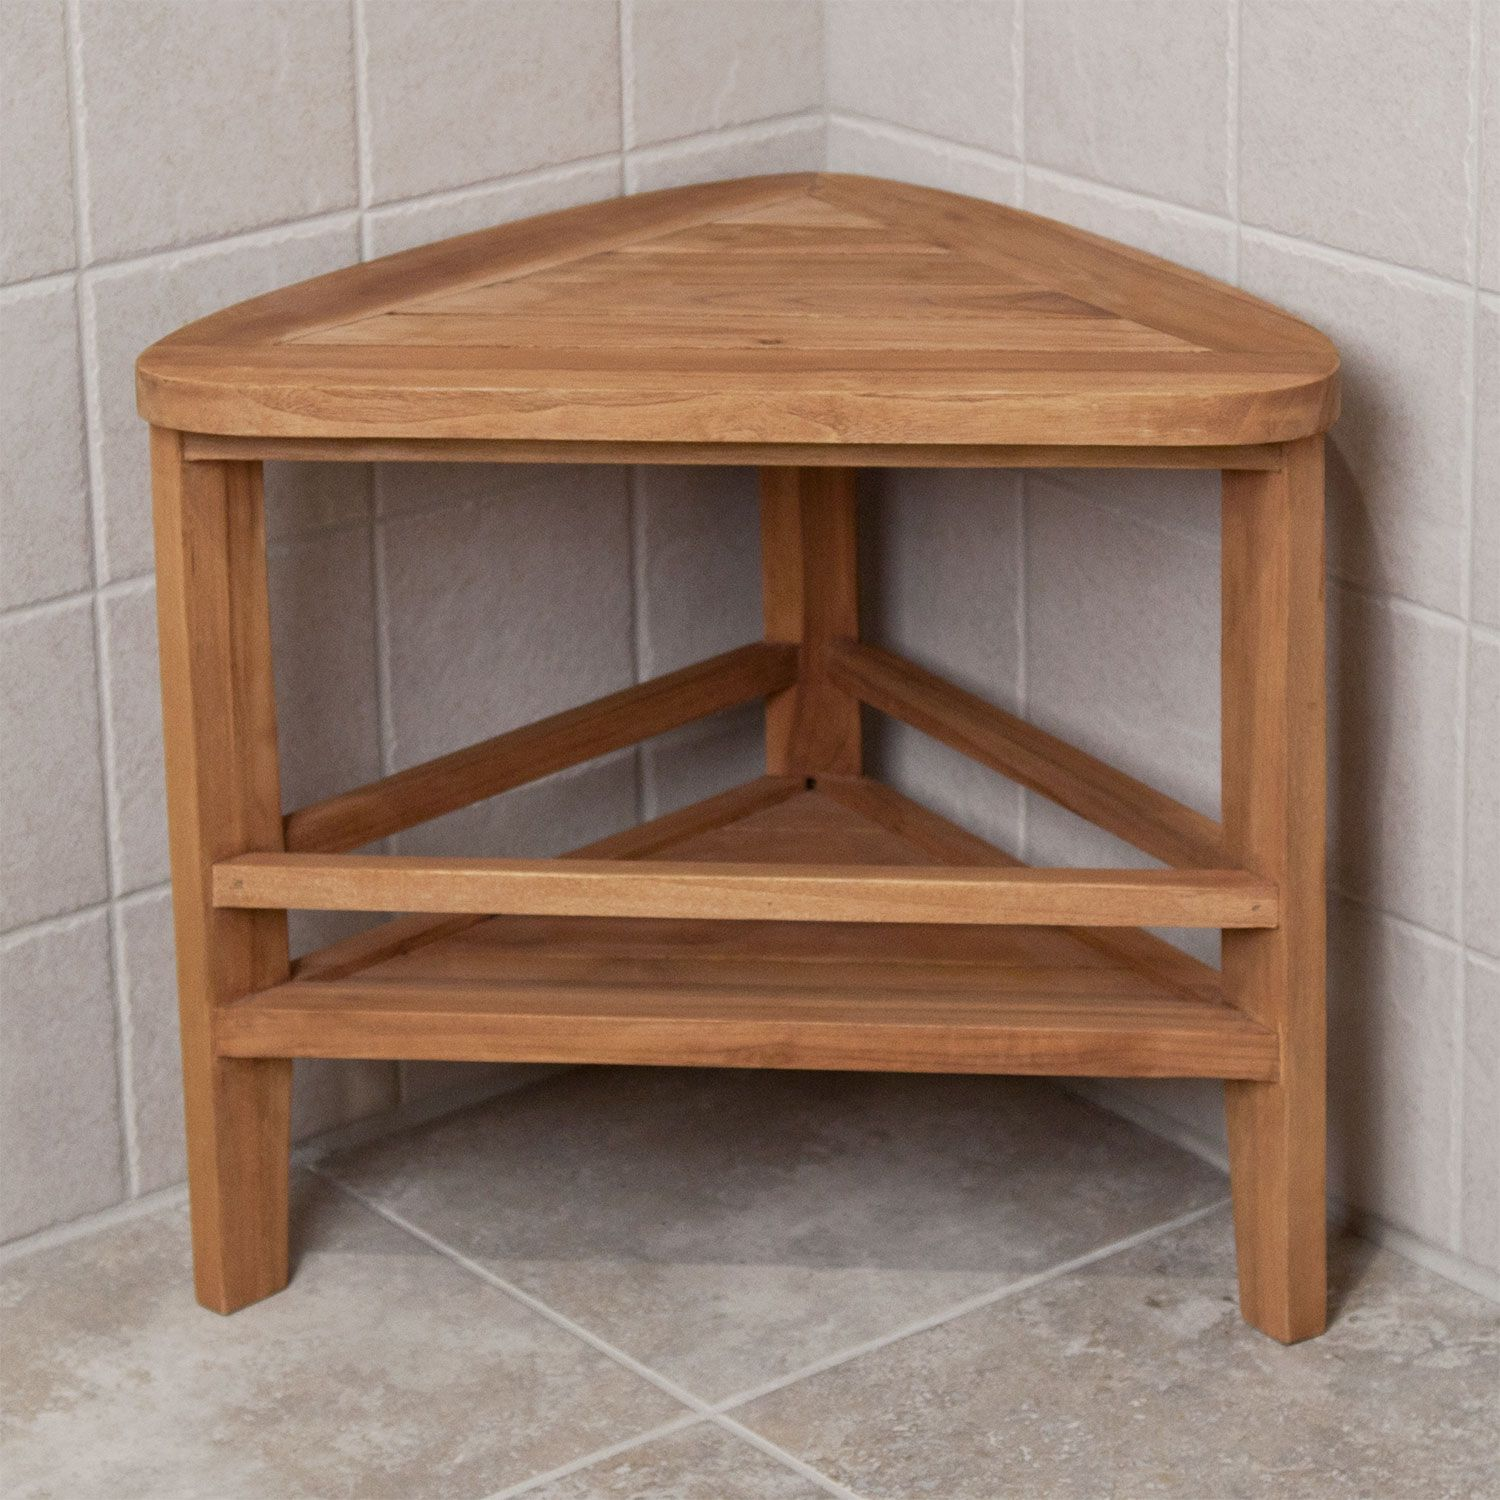 Teak Corner Shower Stool Signature Hardware With Images